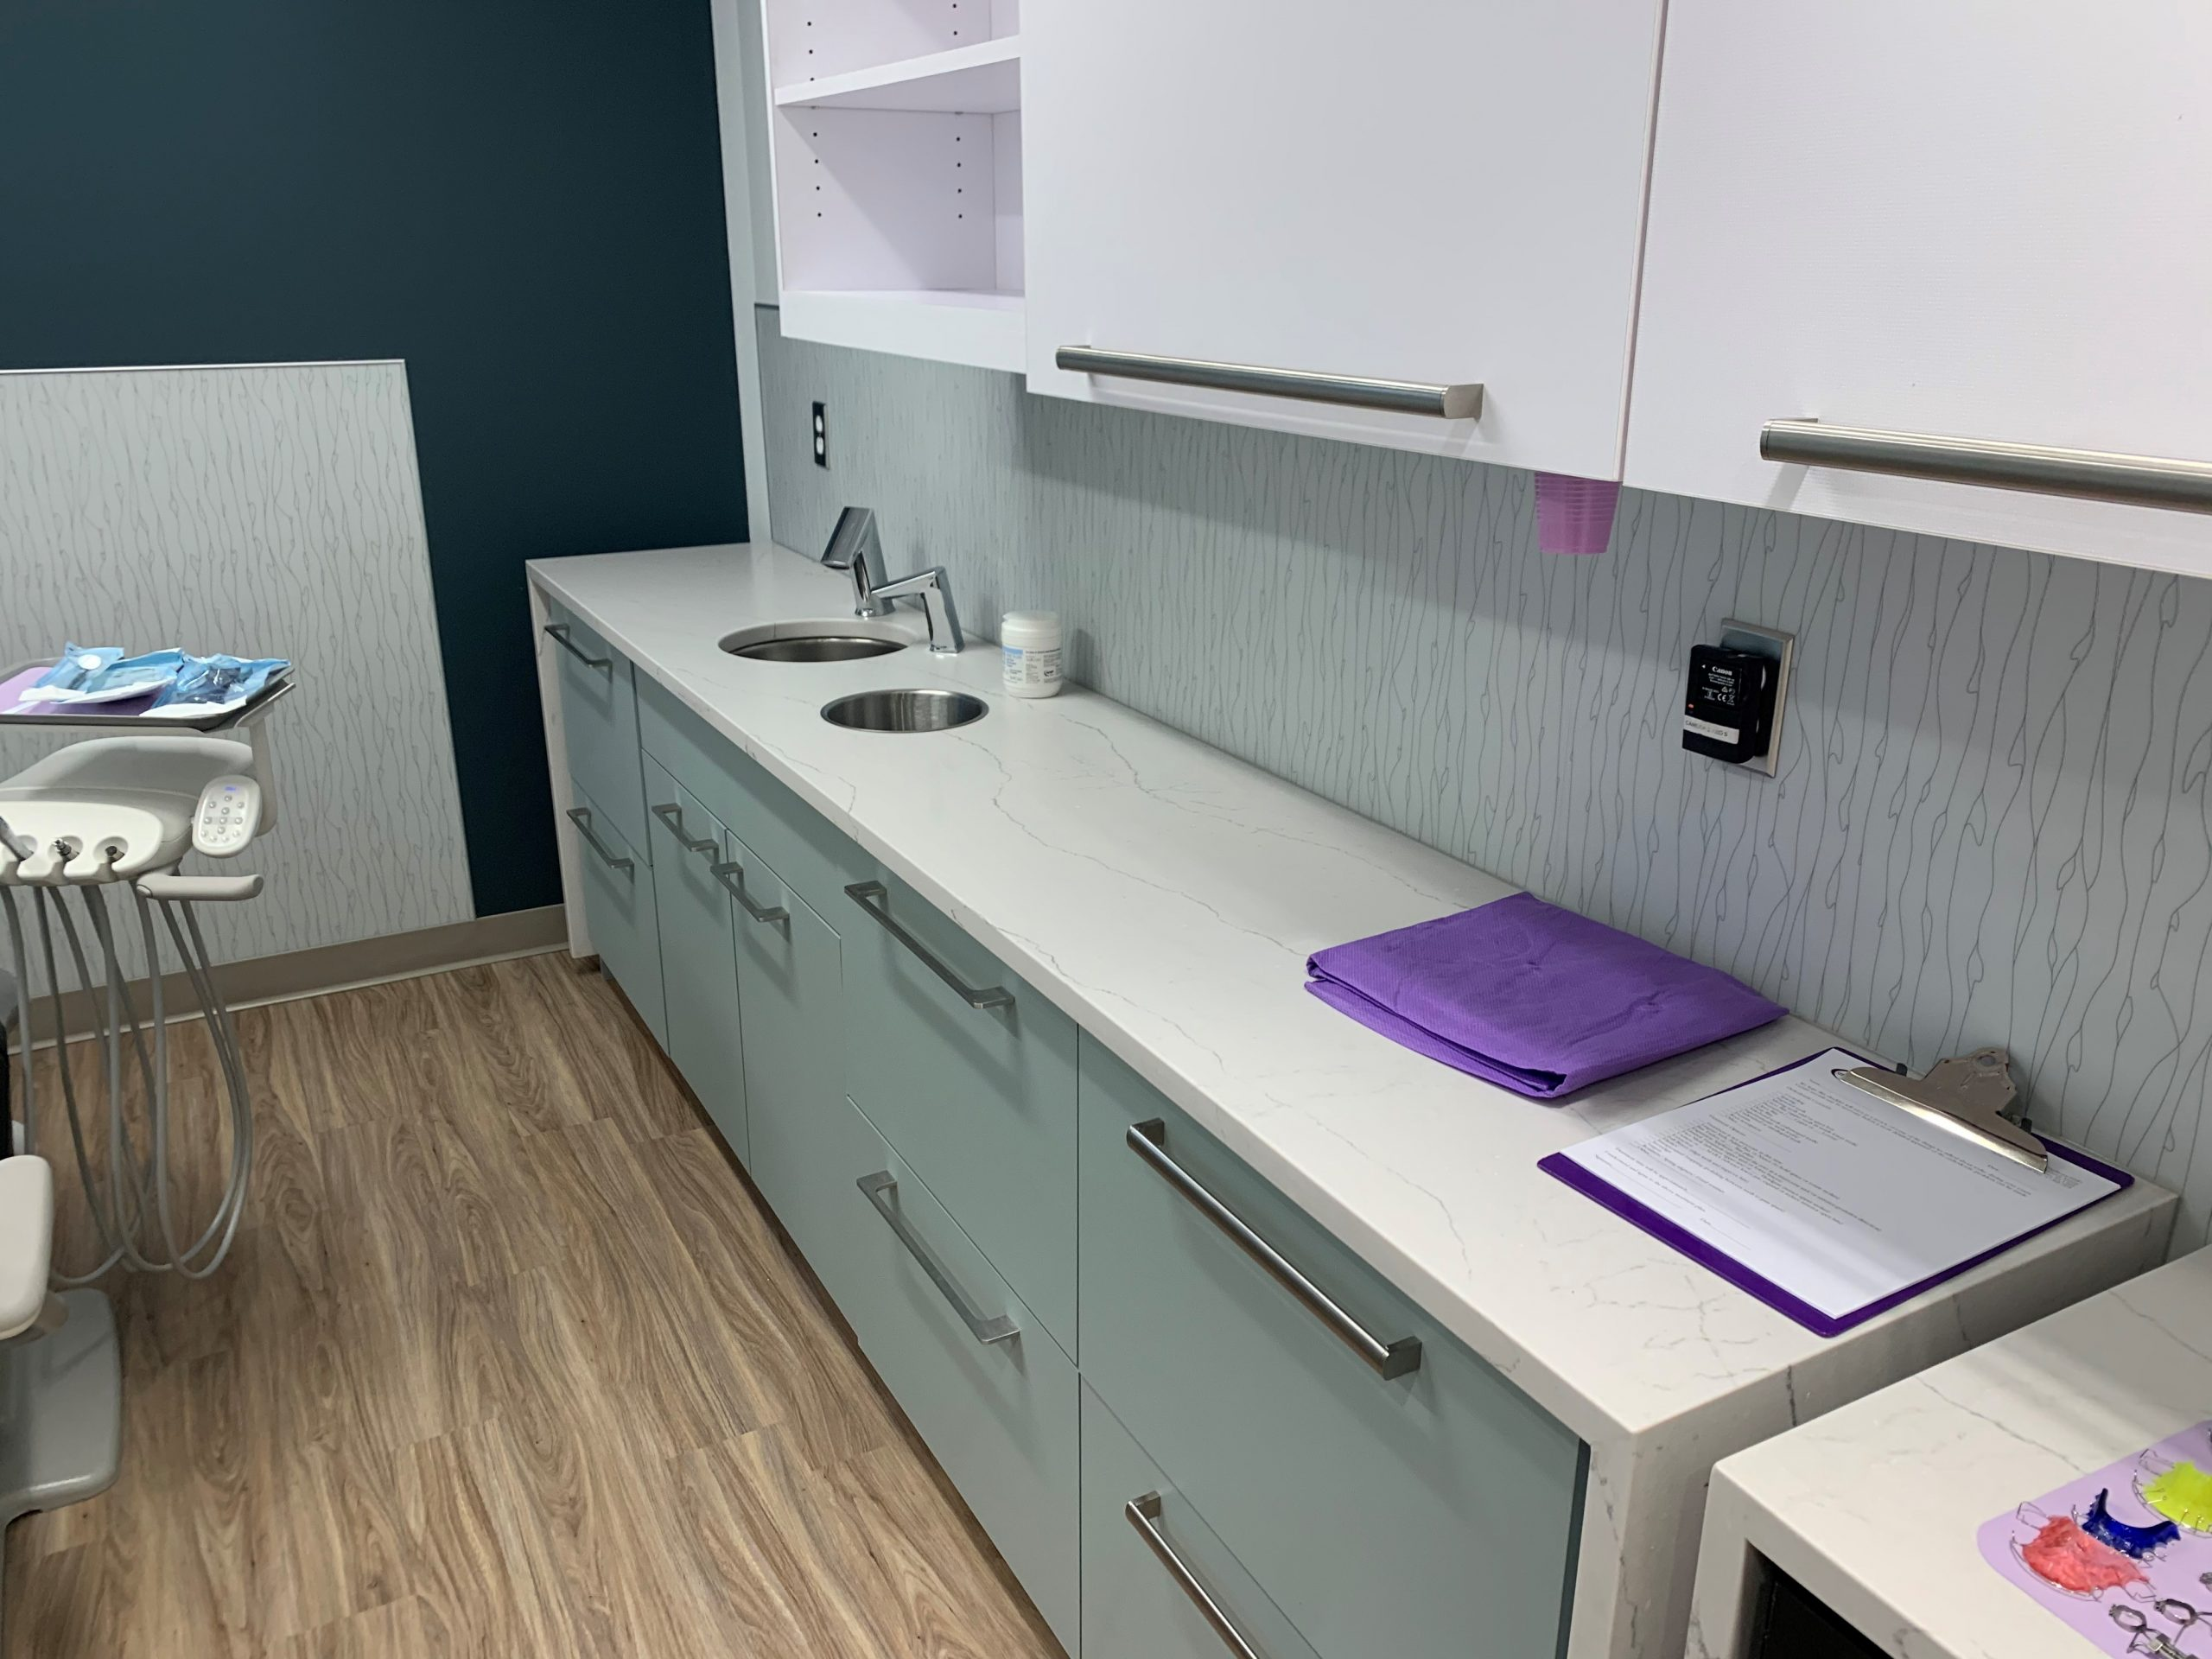 Countertop In Dentistry Office